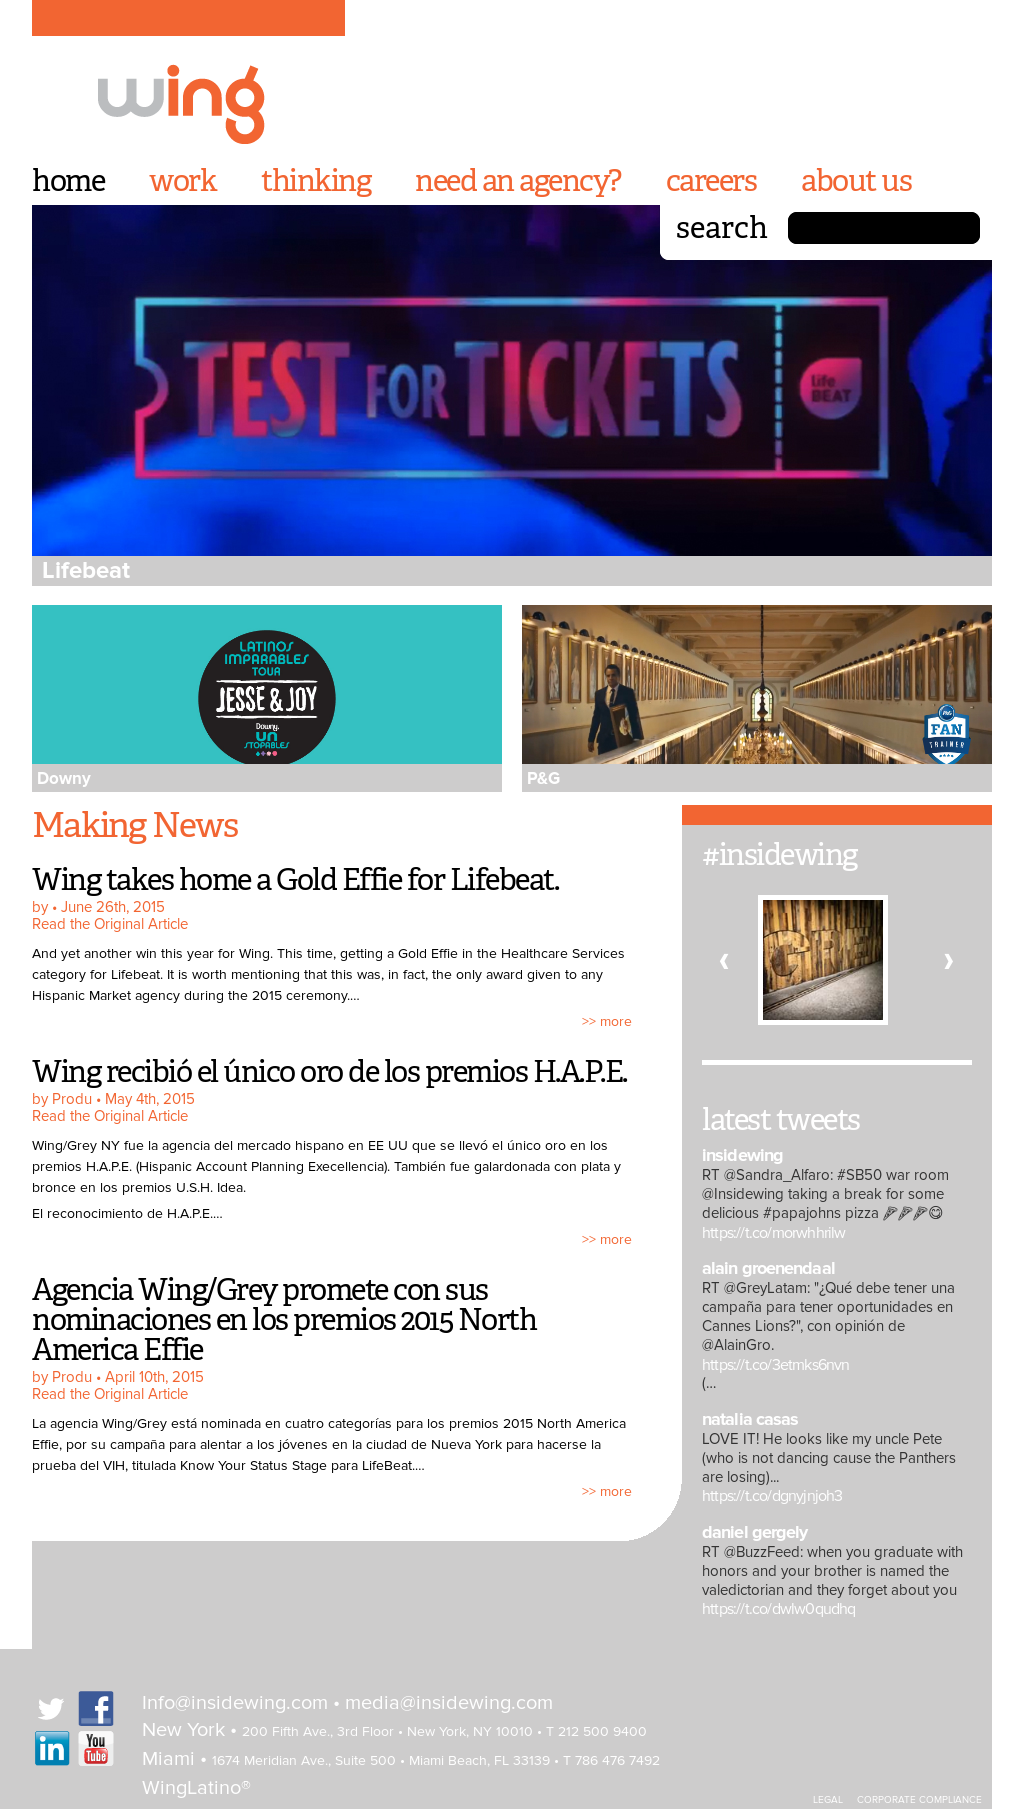 Insidewing S Latest News Blogs Press Releases Videos